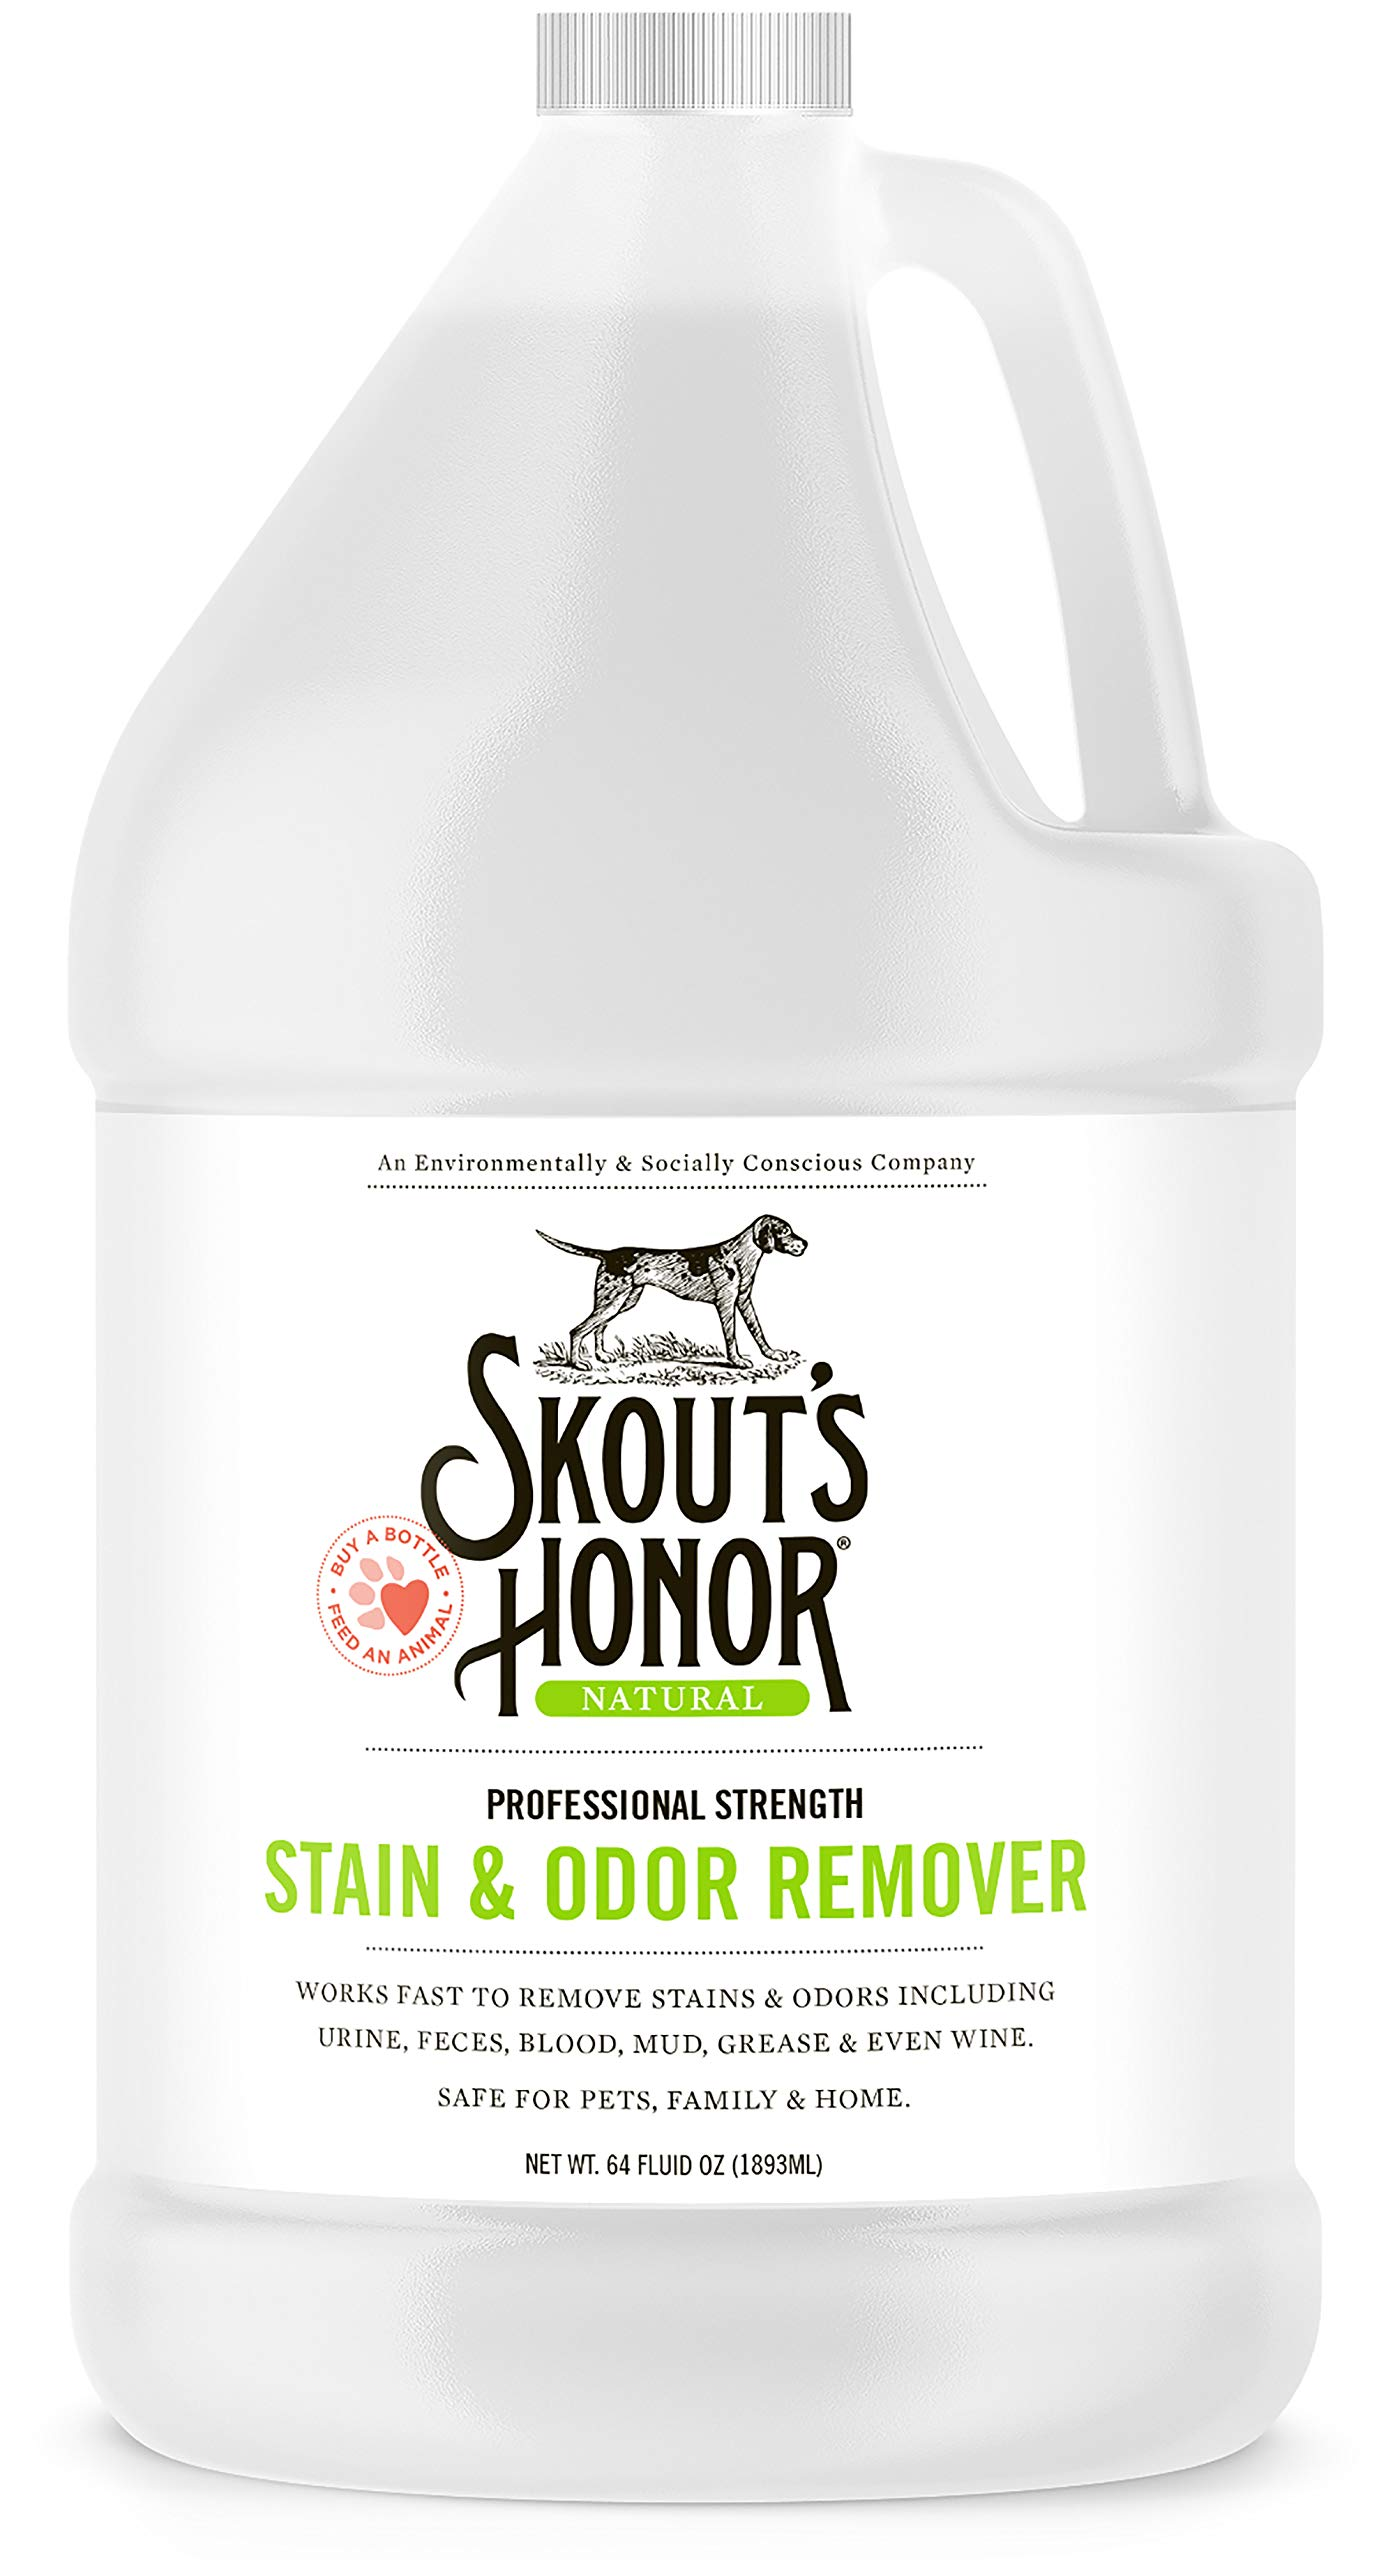 Skout's Honor Professional Strength Stain & Odor Remover by SKOUT'S HONOR